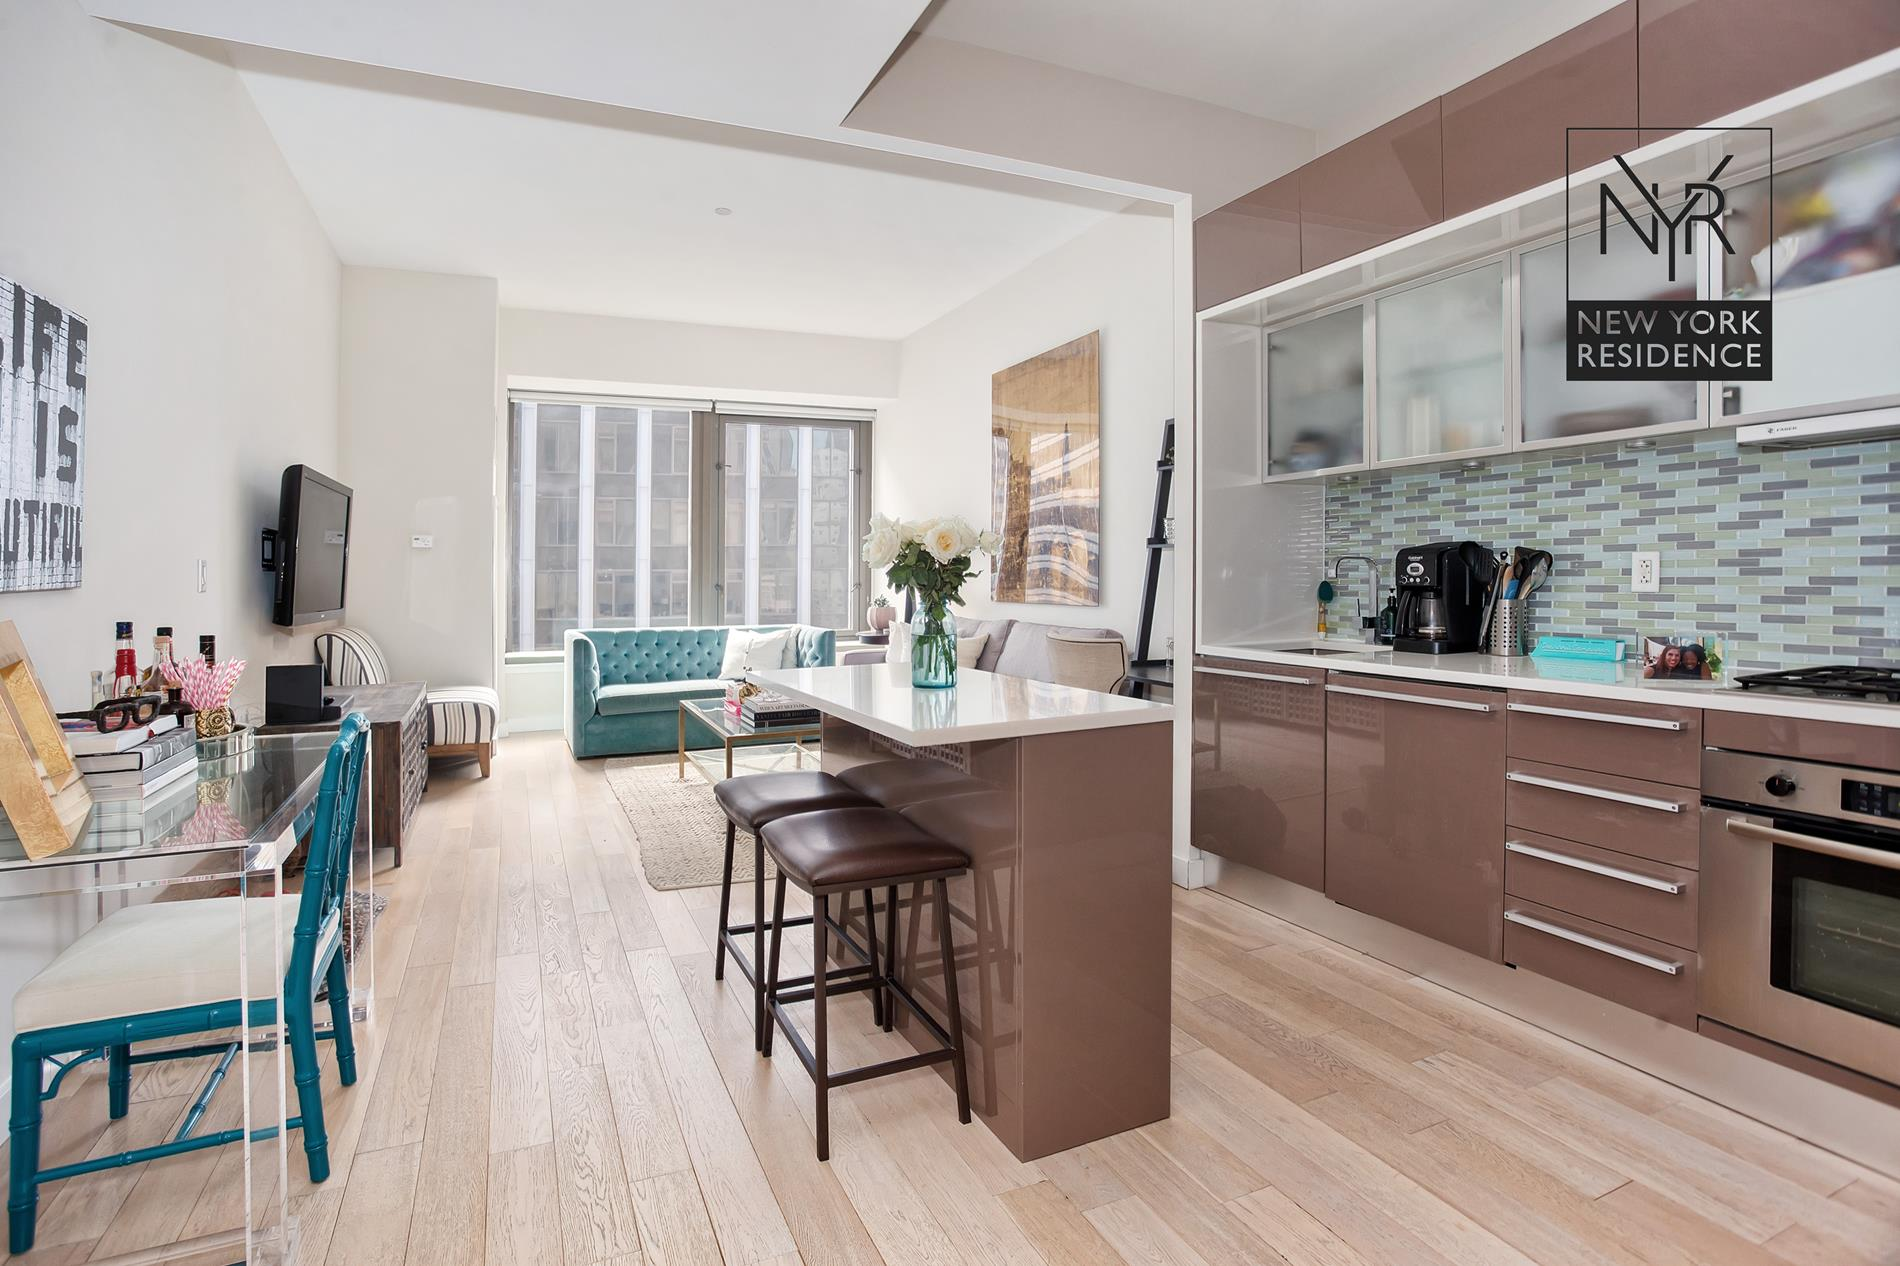 CURRENTLY LEASED FOR $3,400 PER MONTH (plus electric paid by tenant)The current lease term expires on June 30th, 2020 and the tenant has lived in the apartment since June, 2016.75 Wall Street is a luxury residential condominium located above the Hyatt Andaz Hotel on Wall Street.The 43-story tower includes 349 apartments above a new 5 Star Hyatt Andaz hotel designed by The Rockwell Group. The residences begin on the 18th floor and most apartments feature open city views.Apartment Interiors Boffi kitchens, washer & dryer, high ceilings, tall windows and white oak floors. APARTMENT FEATURES:- Open kitchen- Studio + Home Office- Open views from up on the 22nd floor- Washer & dryer- Deep-soaking tub PLUS separate shower stall- Southwest exposure; bright sunlight all dayBUILDING AMENITIES:- 24-hour doorman & concierge- Fitness center- Media room- Lounge- Indoor/outdoor roof deck- A la carte hotel services